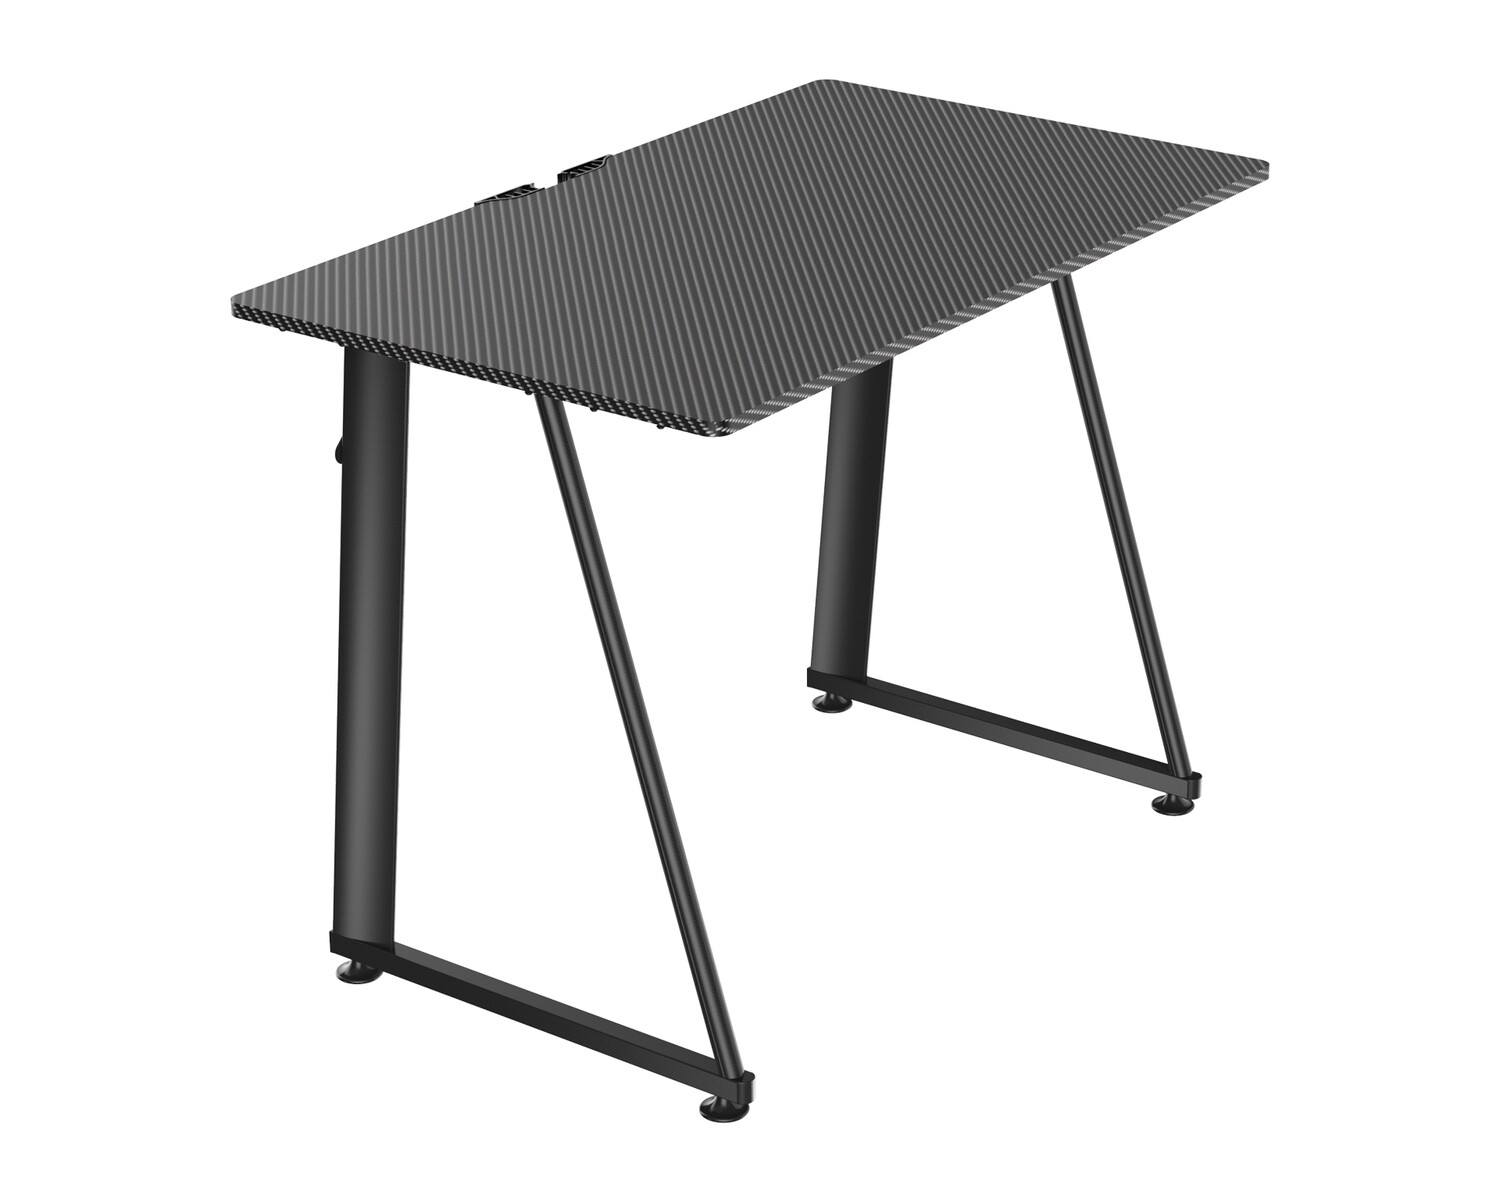 OFX Zeke Carbon Texture Gaming Desk (100*60) (Black)